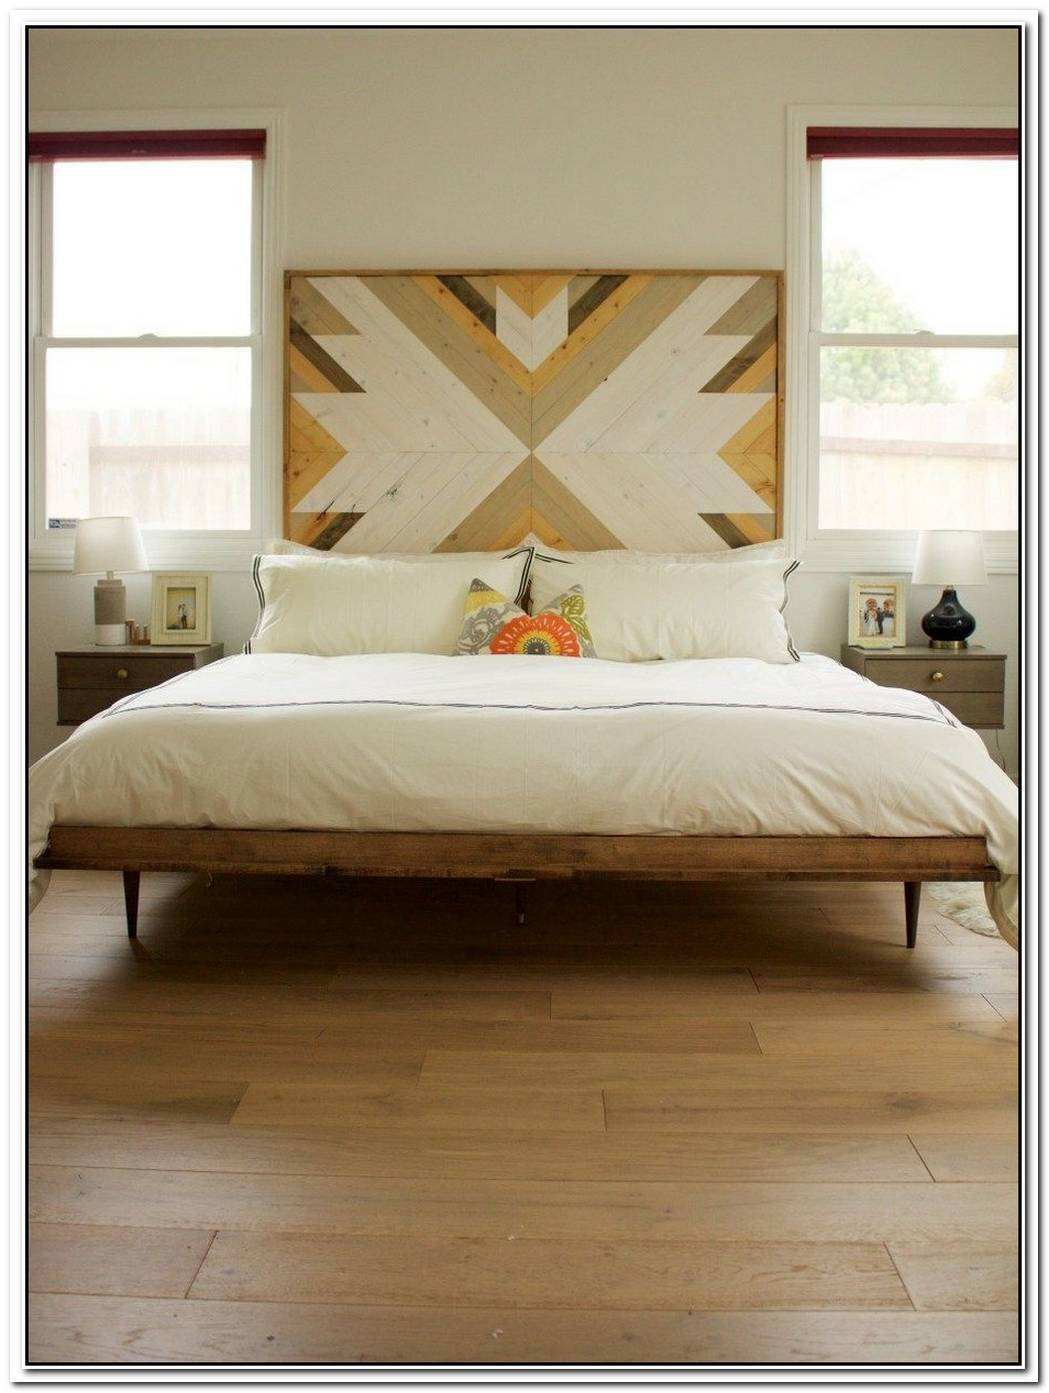 This Is The Perfect Headboard For A Midcentury Bedroom